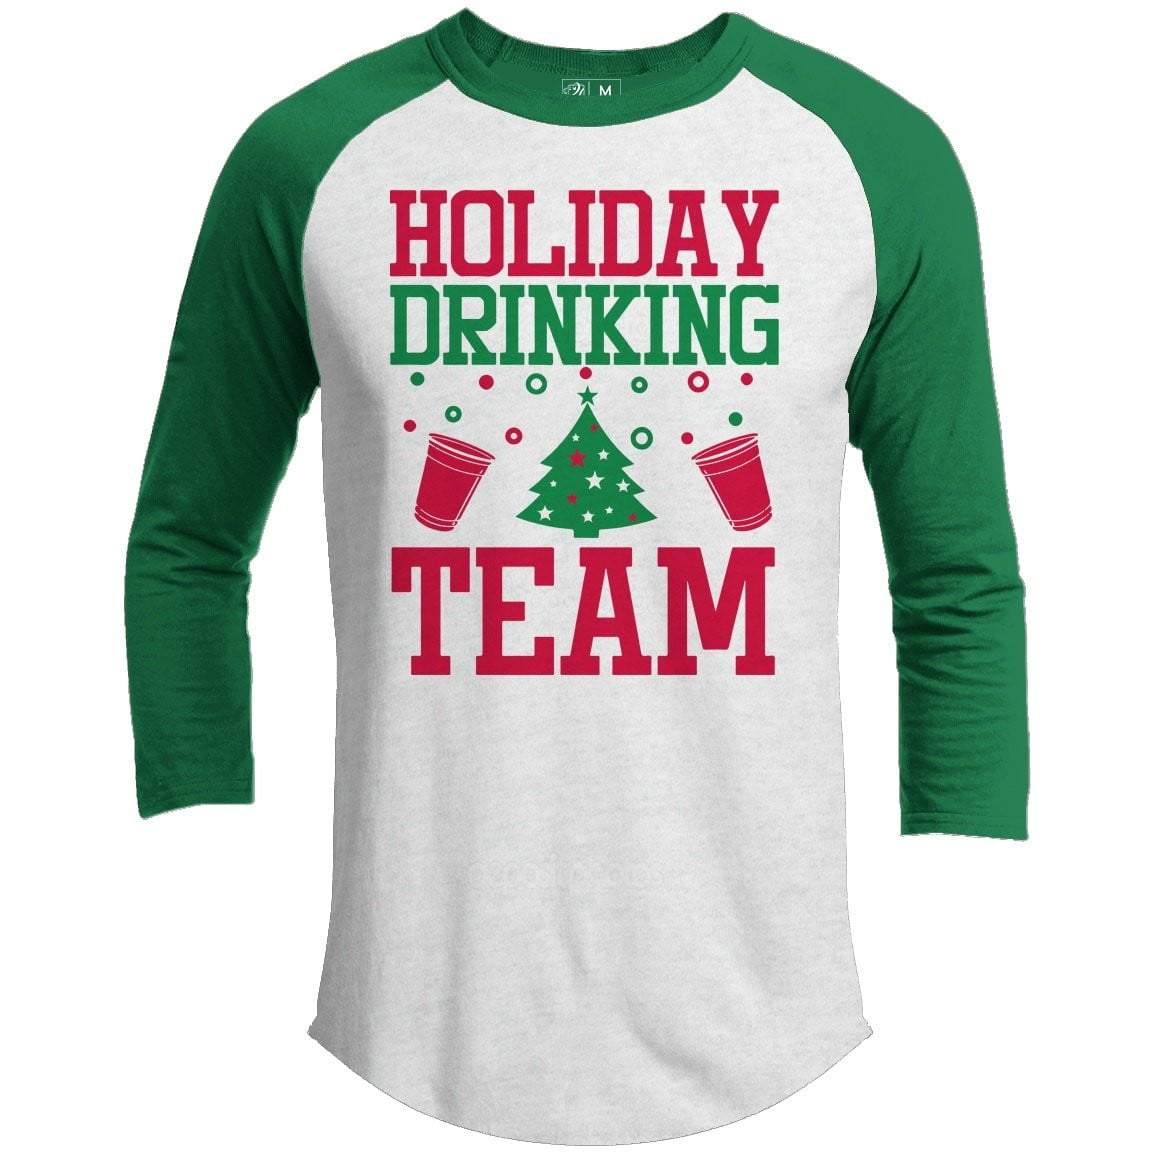 Holiday Drinking Team Premium Christmas Raglan